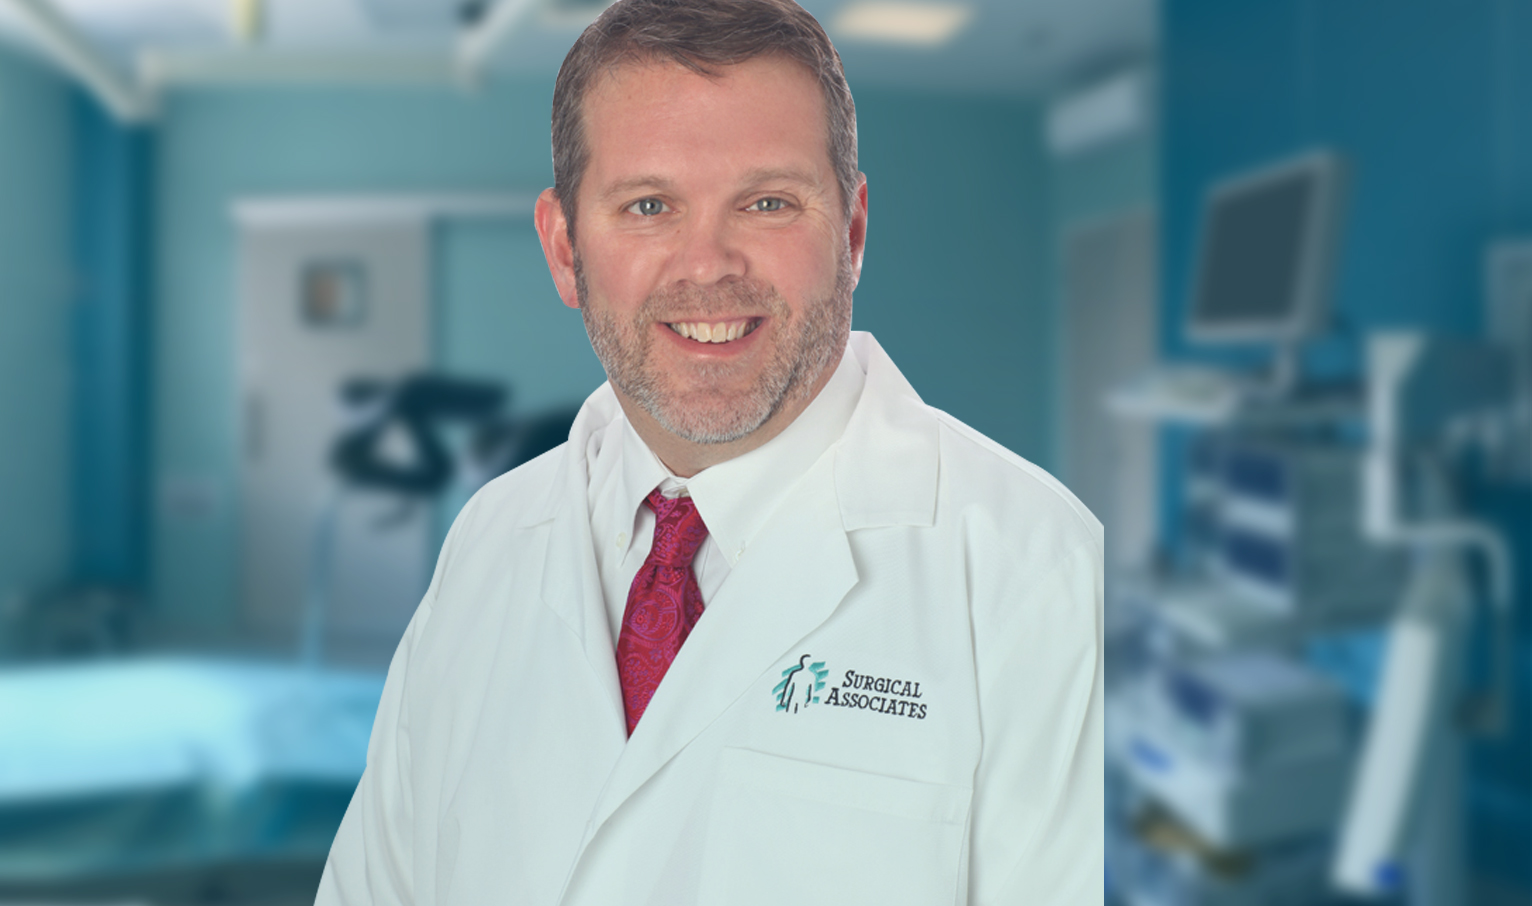 Kenneth H. Eckhert III, MD, FACS